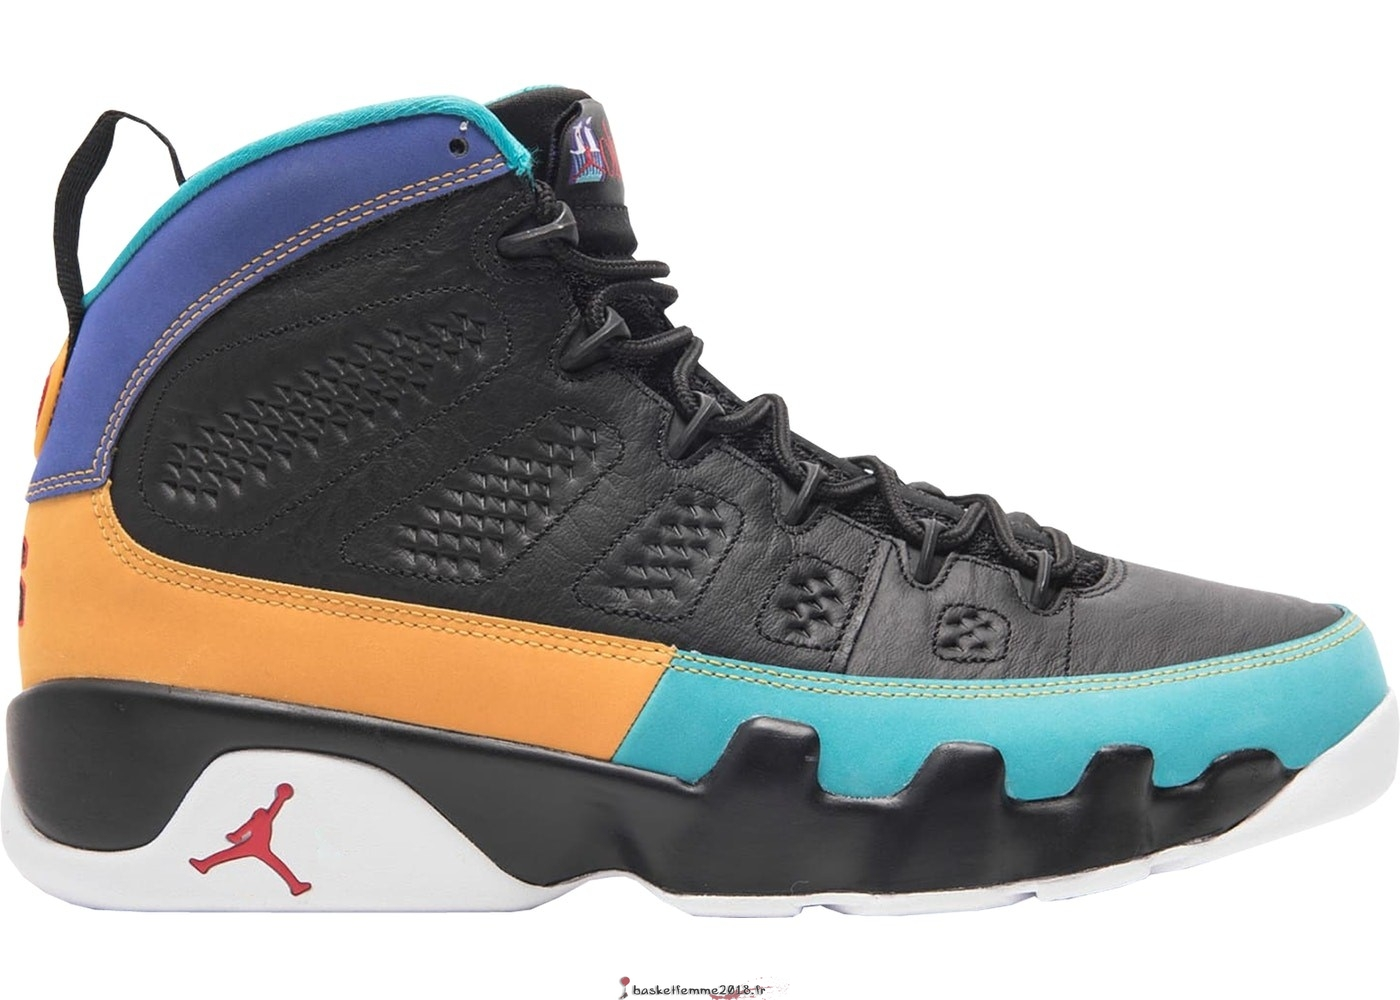 Air Jordan 9 Homme Retro Dream It Do It Noir (302370-065) Chaussure de Basket